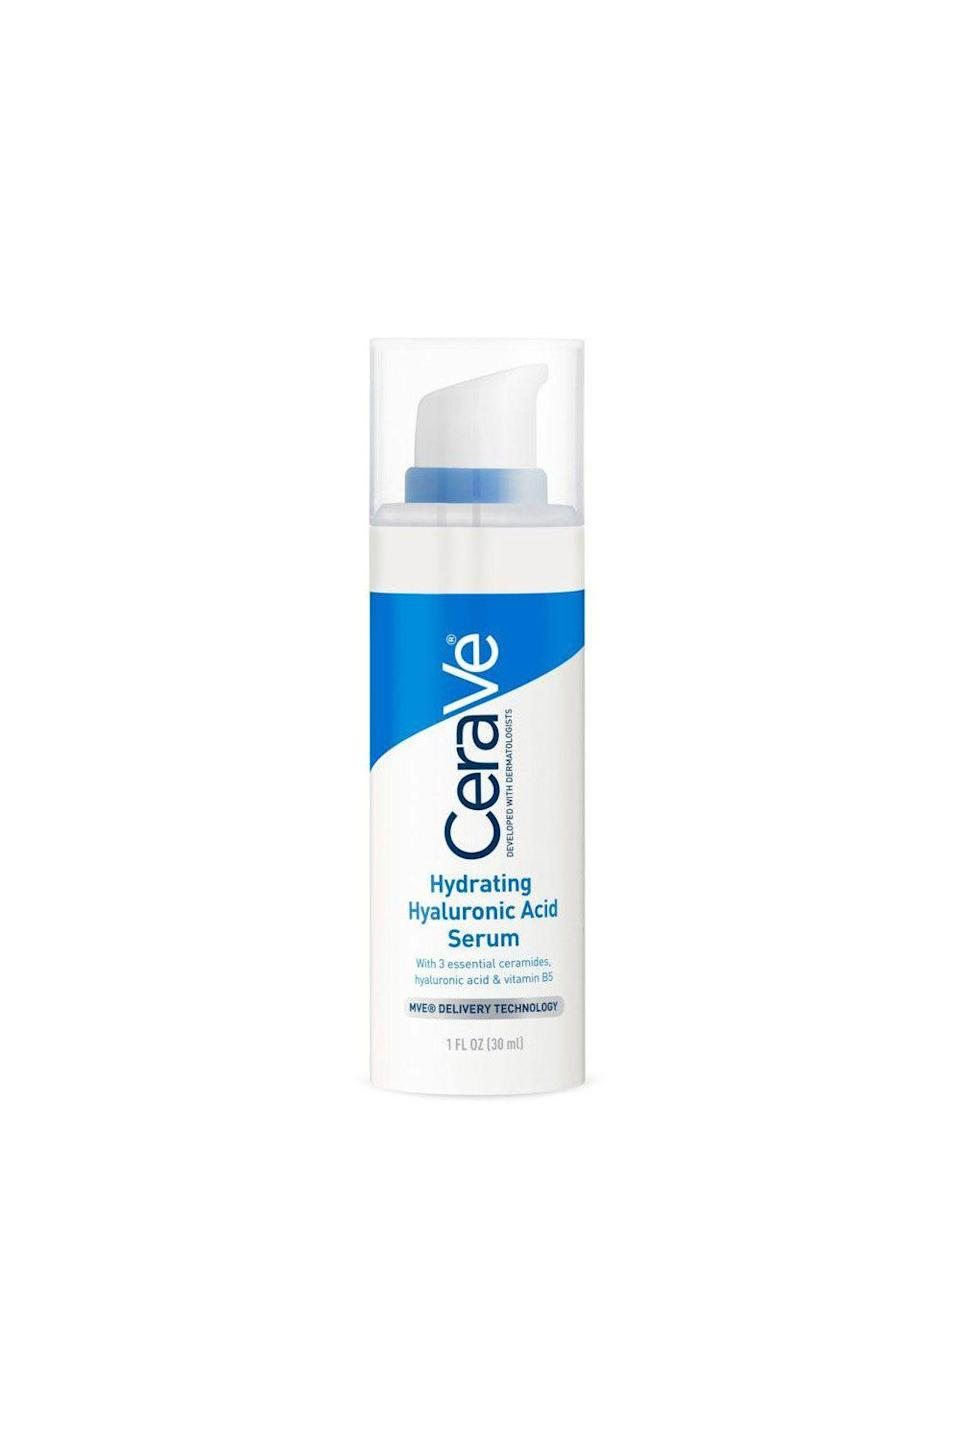 """<p><strong>CeraVe</strong></p><p>ulta.com</p><p><strong>$19.99</strong></p><p><a href=""""https://go.redirectingat.com?id=74968X1596630&url=https%3A%2F%2Fwww.ulta.com%2Fhydrating-hyaluronic-acid-face-serum%3FproductId%3Dpimprod2002096&sref=https%3A%2F%2Fwww.oprahdaily.com%2Fbeauty%2Fskin-makeup%2Fg27529759%2Fbest-hyaluronic-acid-serum%2F"""" rel=""""nofollow noopener"""" target=""""_blank"""" data-ylk=""""slk:SHOP NOW"""" class=""""link rapid-noclick-resp"""">SHOP NOW</a></p><p>A trusted brand, this CeraVe serum contains gentle ingredients that are better for sensitive skin, at a reasonable price, says Batra. It also contains vitamin B5 and ceramides to help reduce the appearance of fine lines and wrinkles.</p>"""